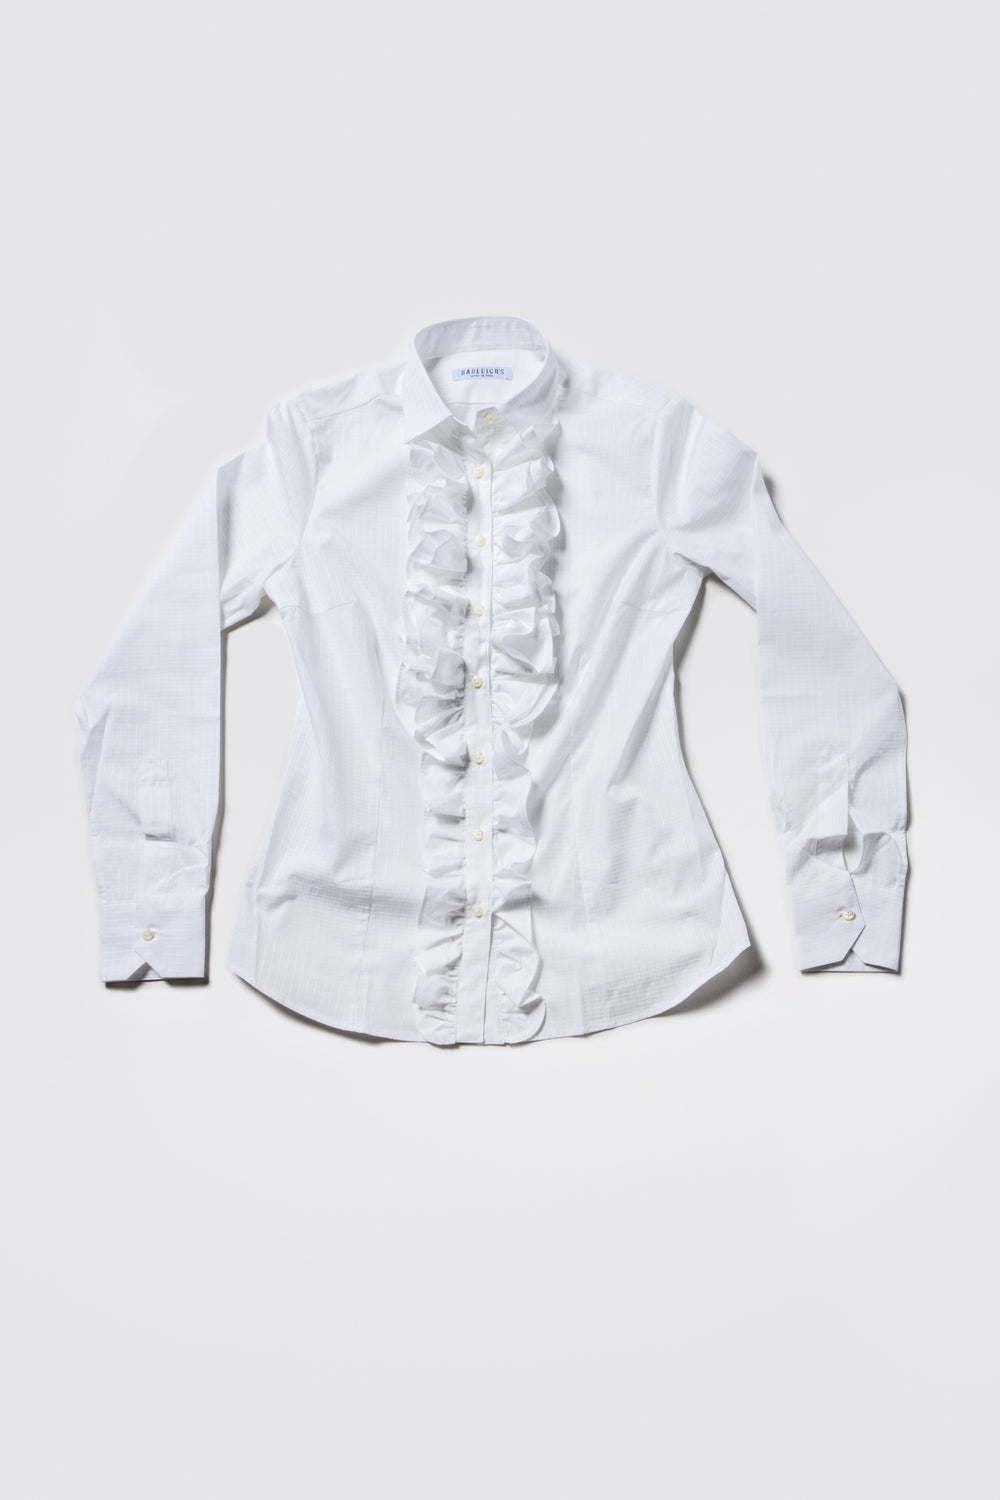 Belinda Blouse in White